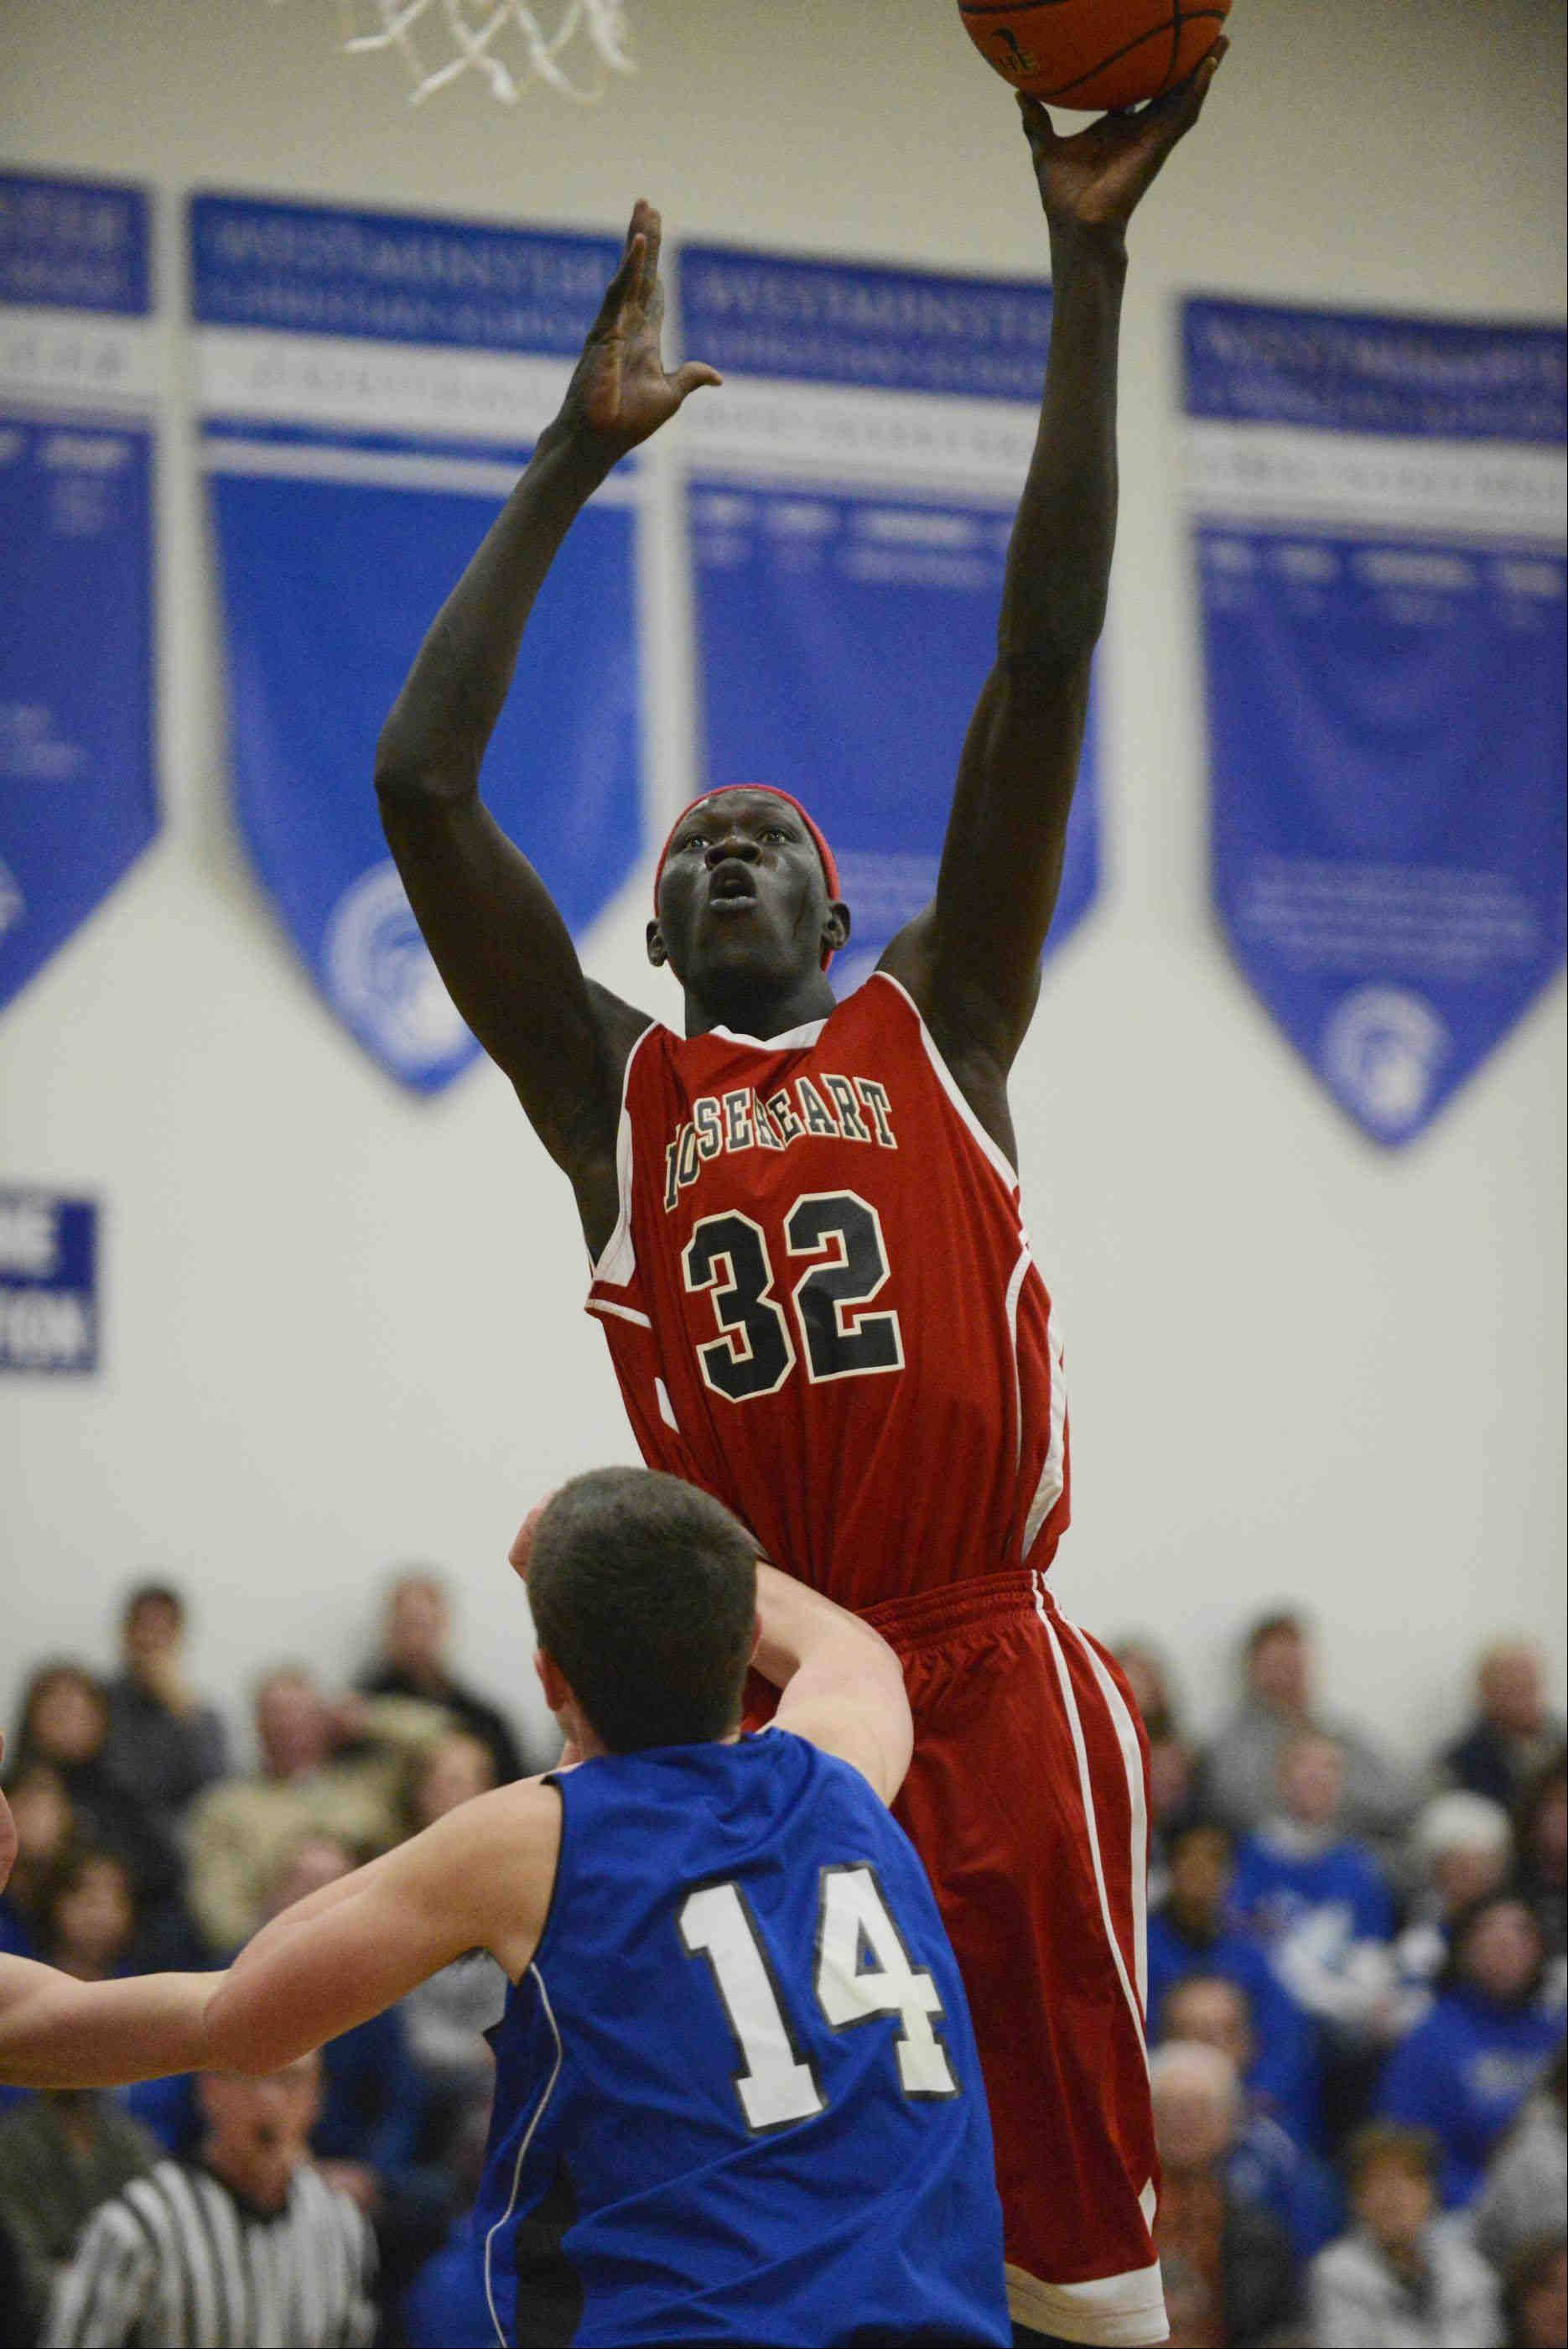 Mooseheart's 6-foot-10 Makur Puou stretches for an easy shot over Westminster Christian's Sam Carani Wednesday in Elgin.